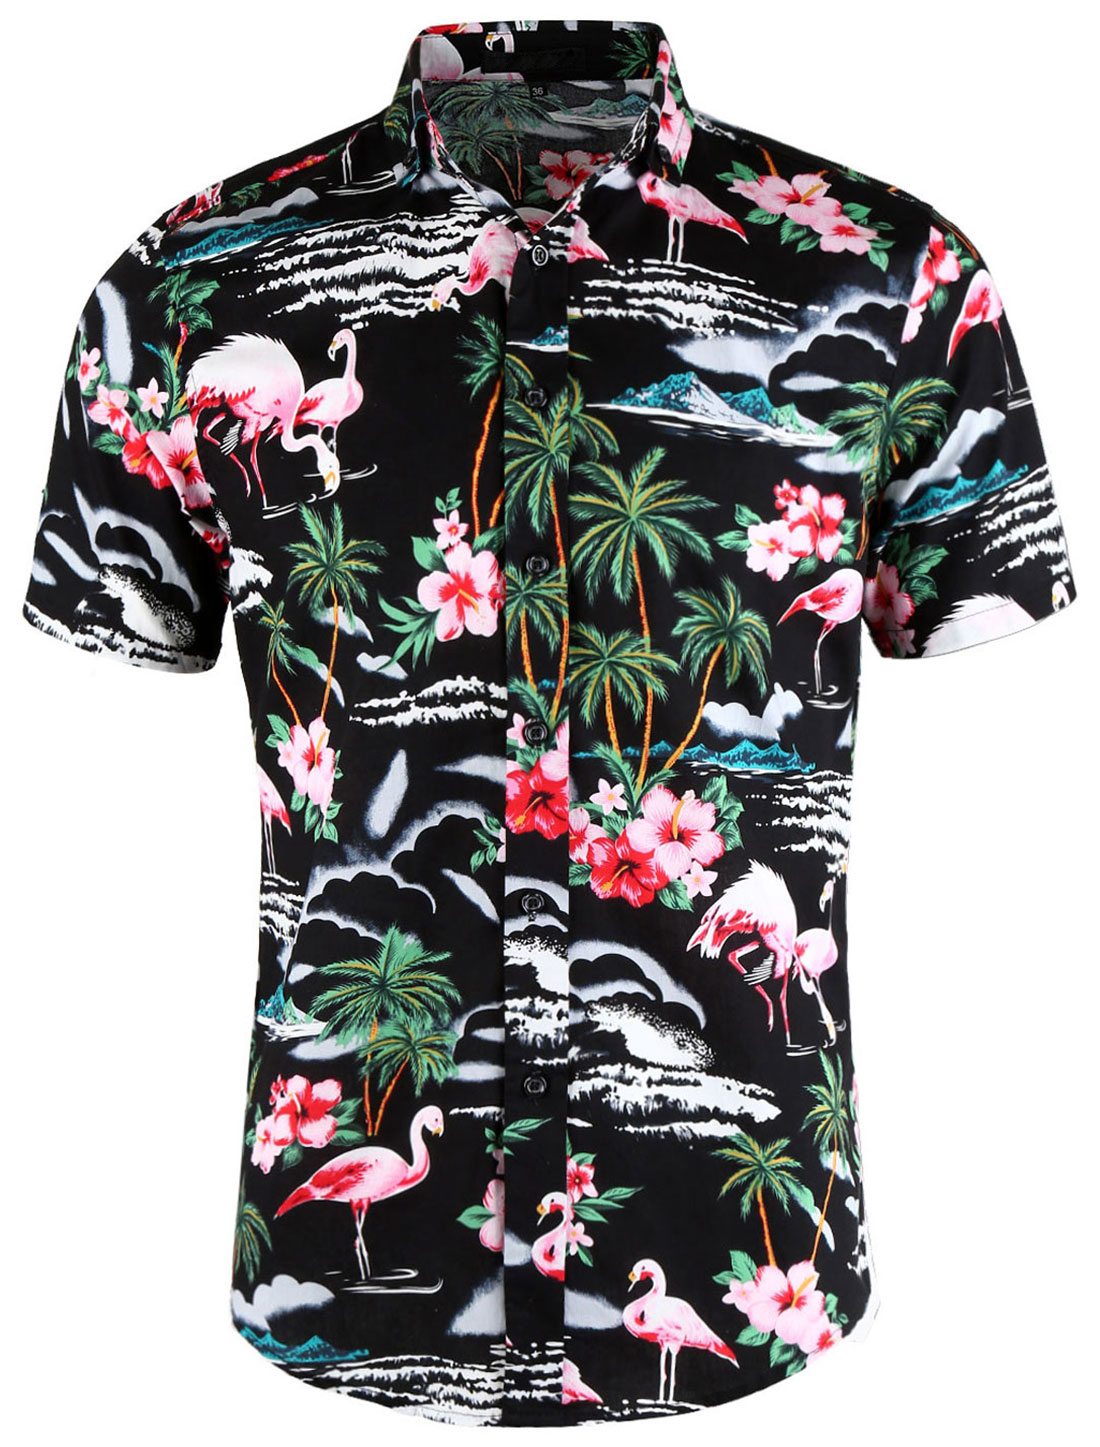 Men Summer Floral Flamingo Button Down Short Sleeves Hawaiian Shirt Black M